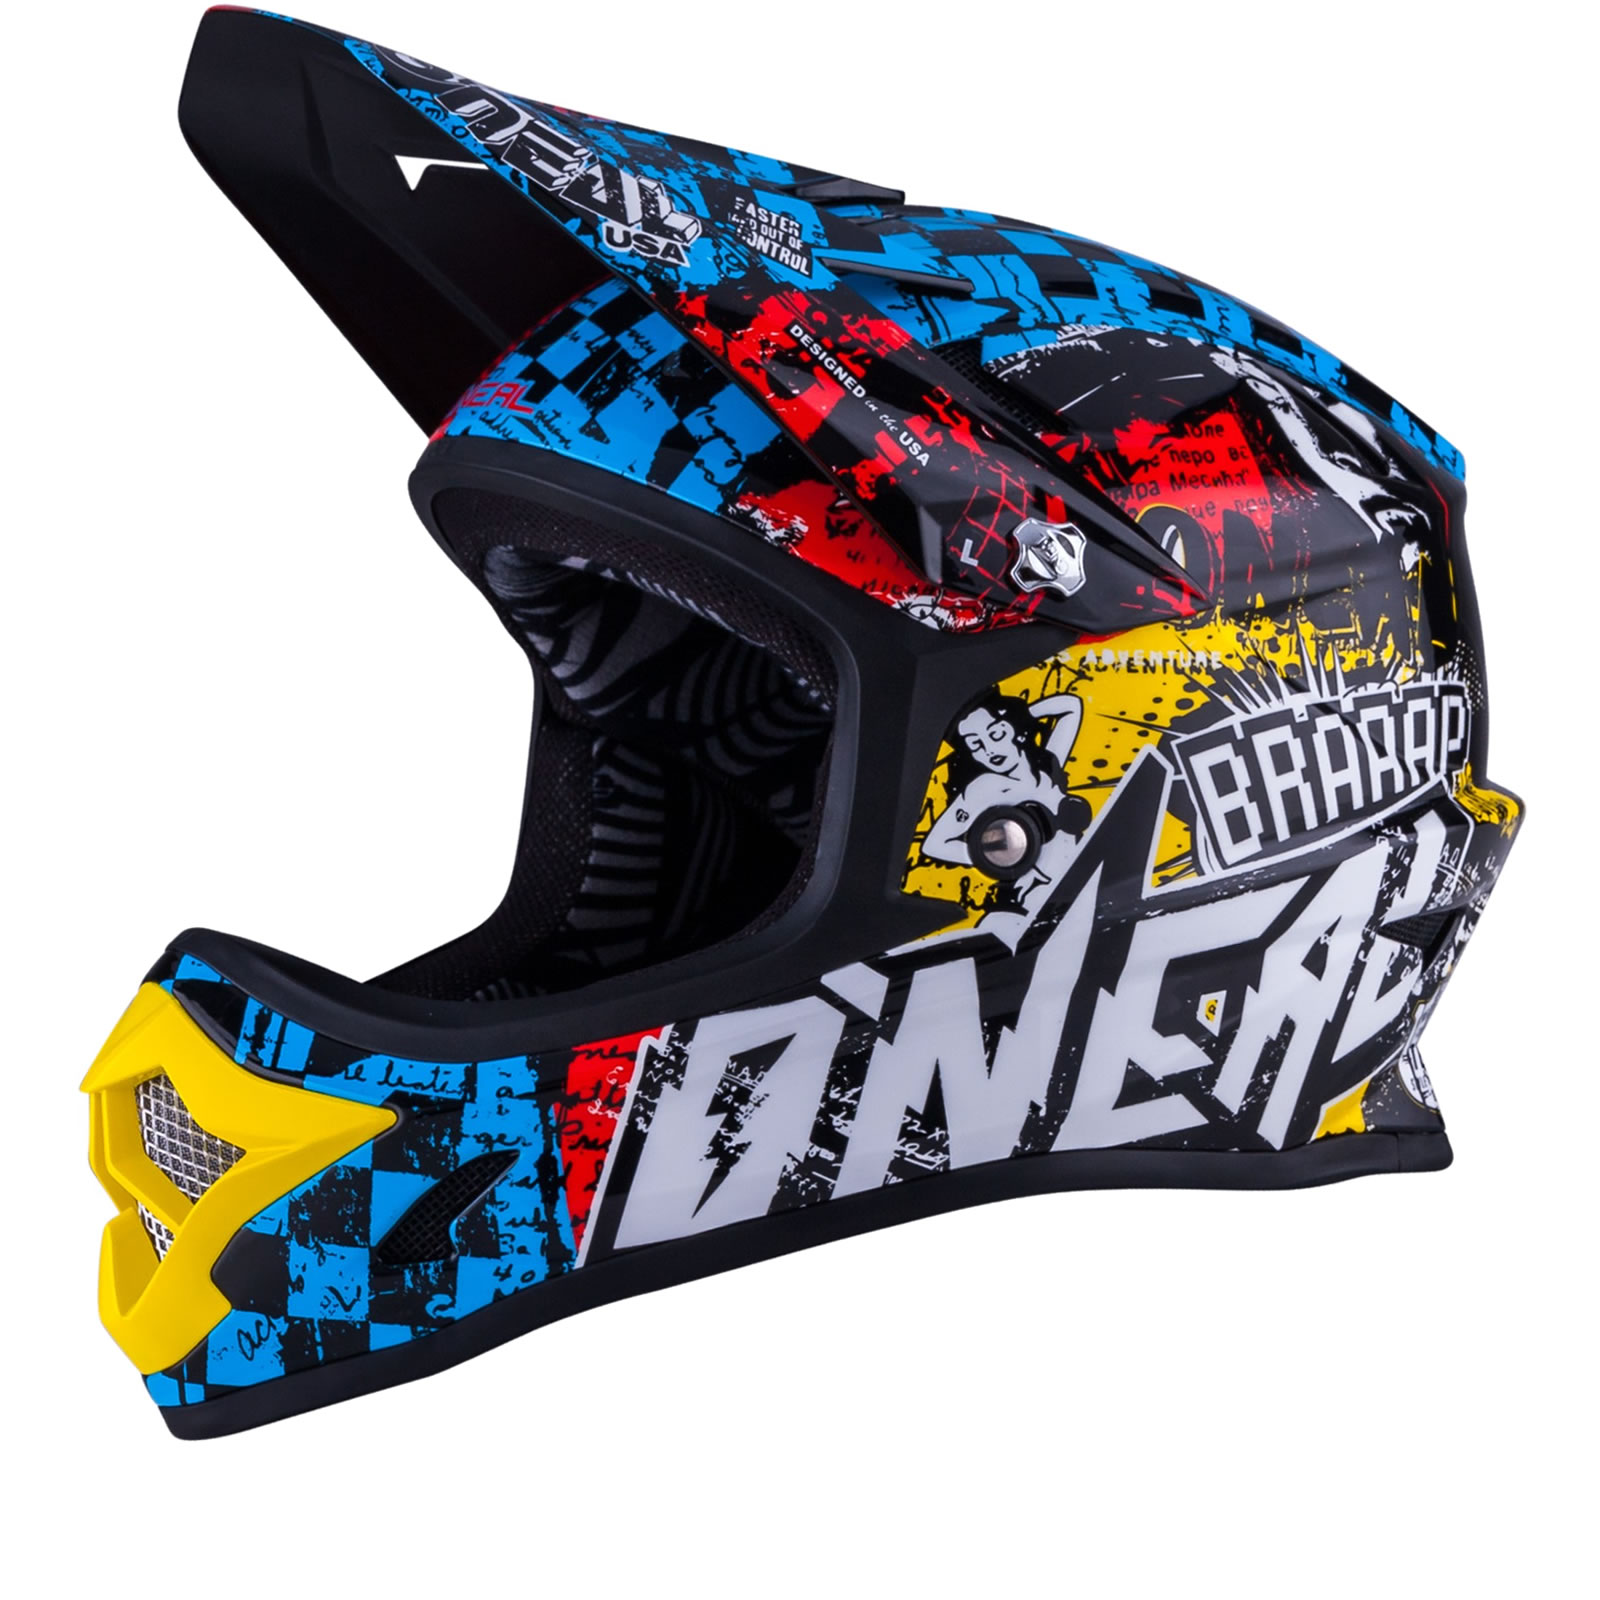 oneal 3 series kids wild motocross helmet helmets. Black Bedroom Furniture Sets. Home Design Ideas